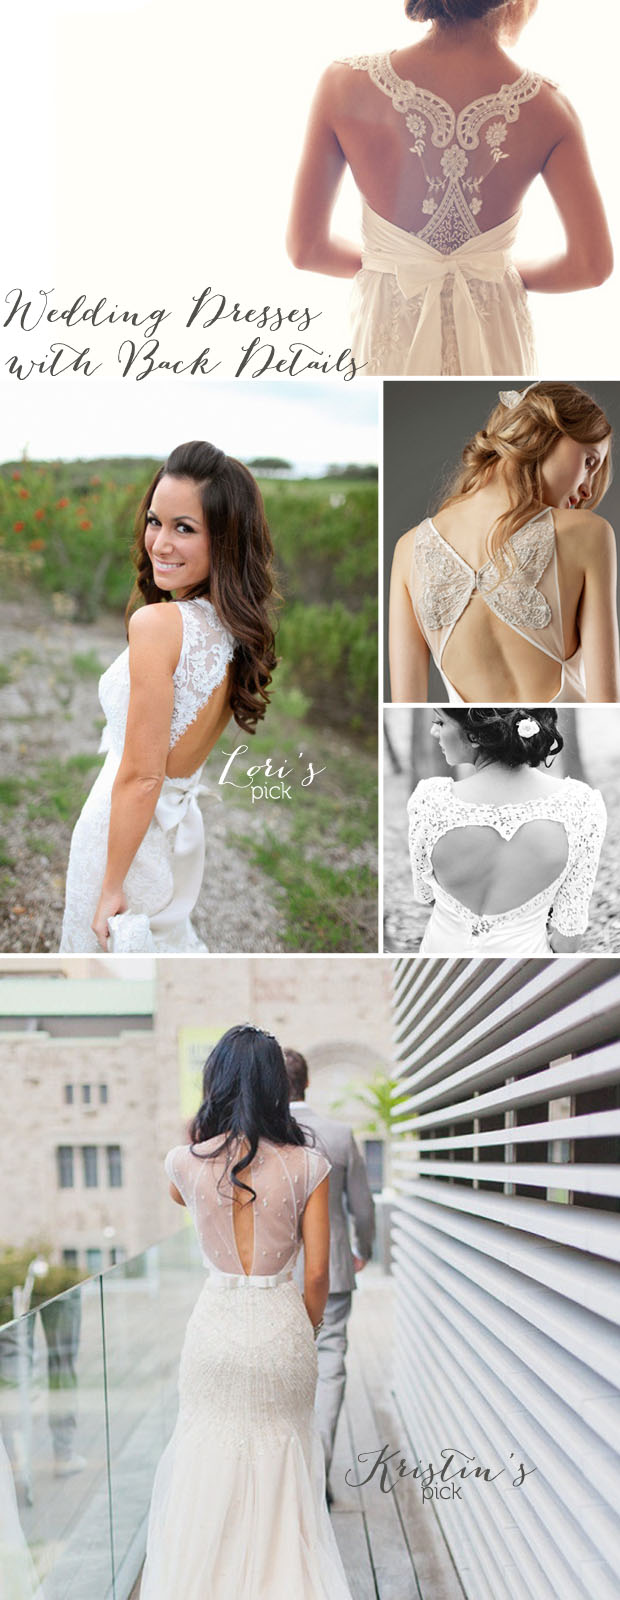 back cut outs, low backs, heart cut out, peepholes, back details on wedding dresses